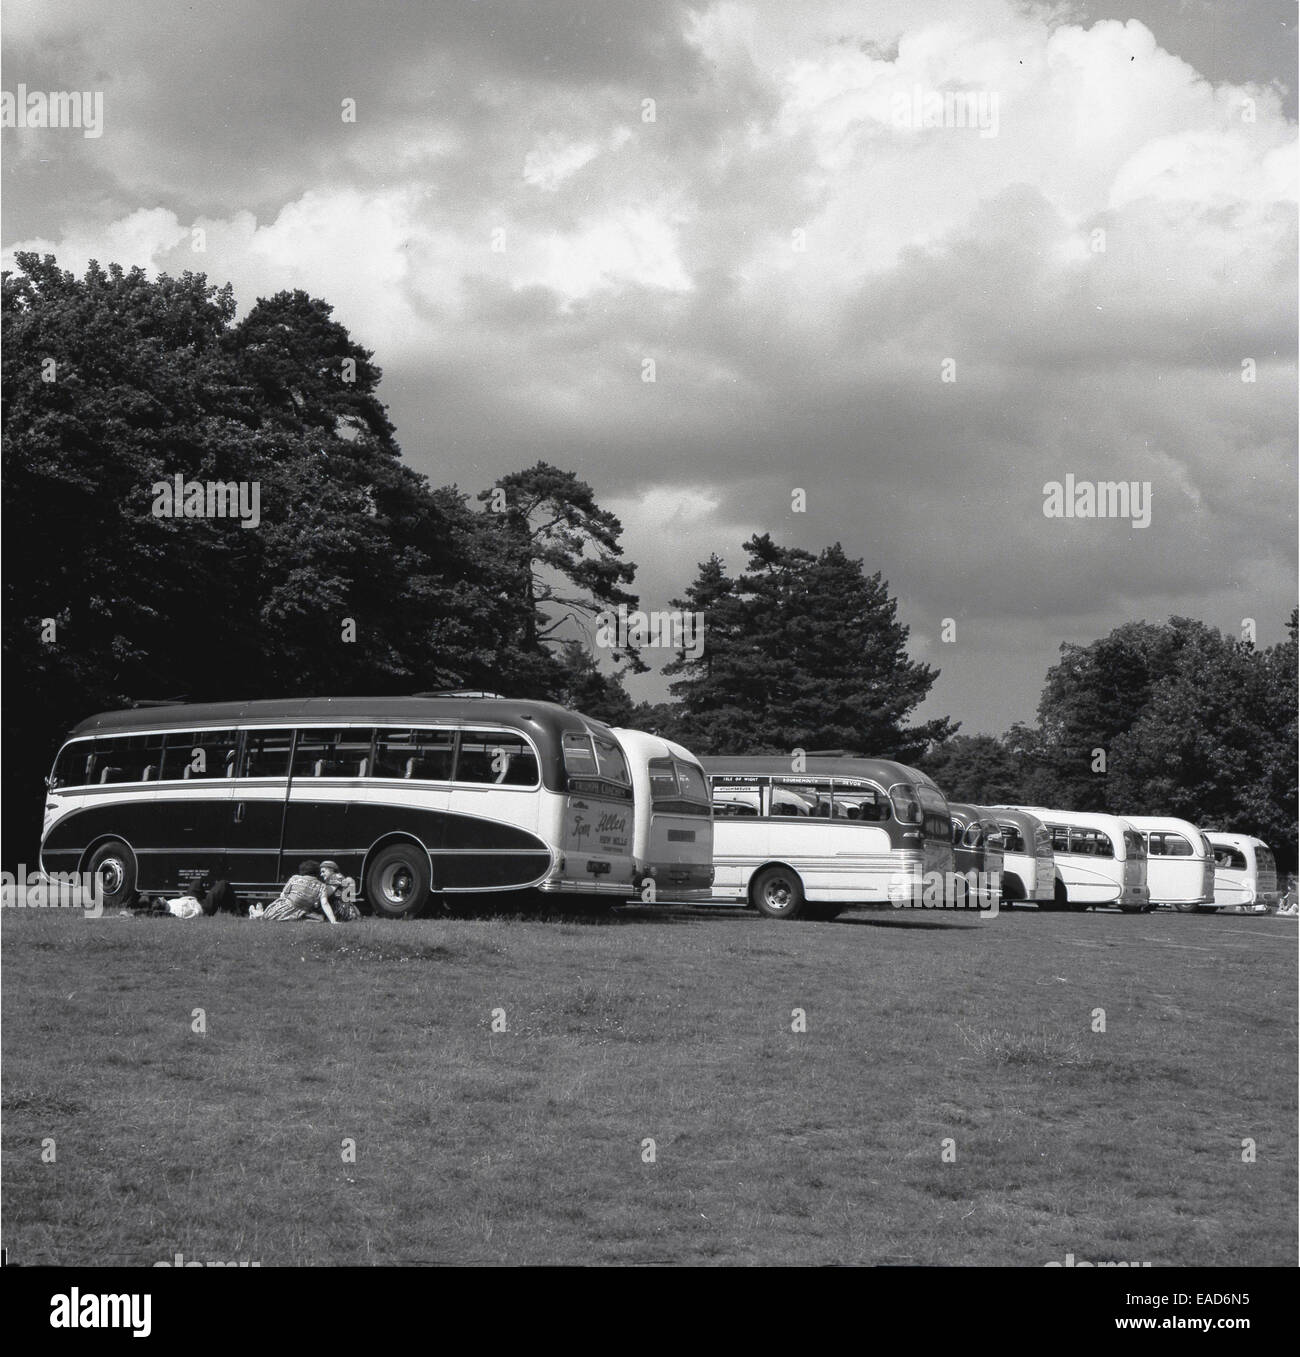 historical. 1950s, line of tourist coaches in a field. - Stock Image